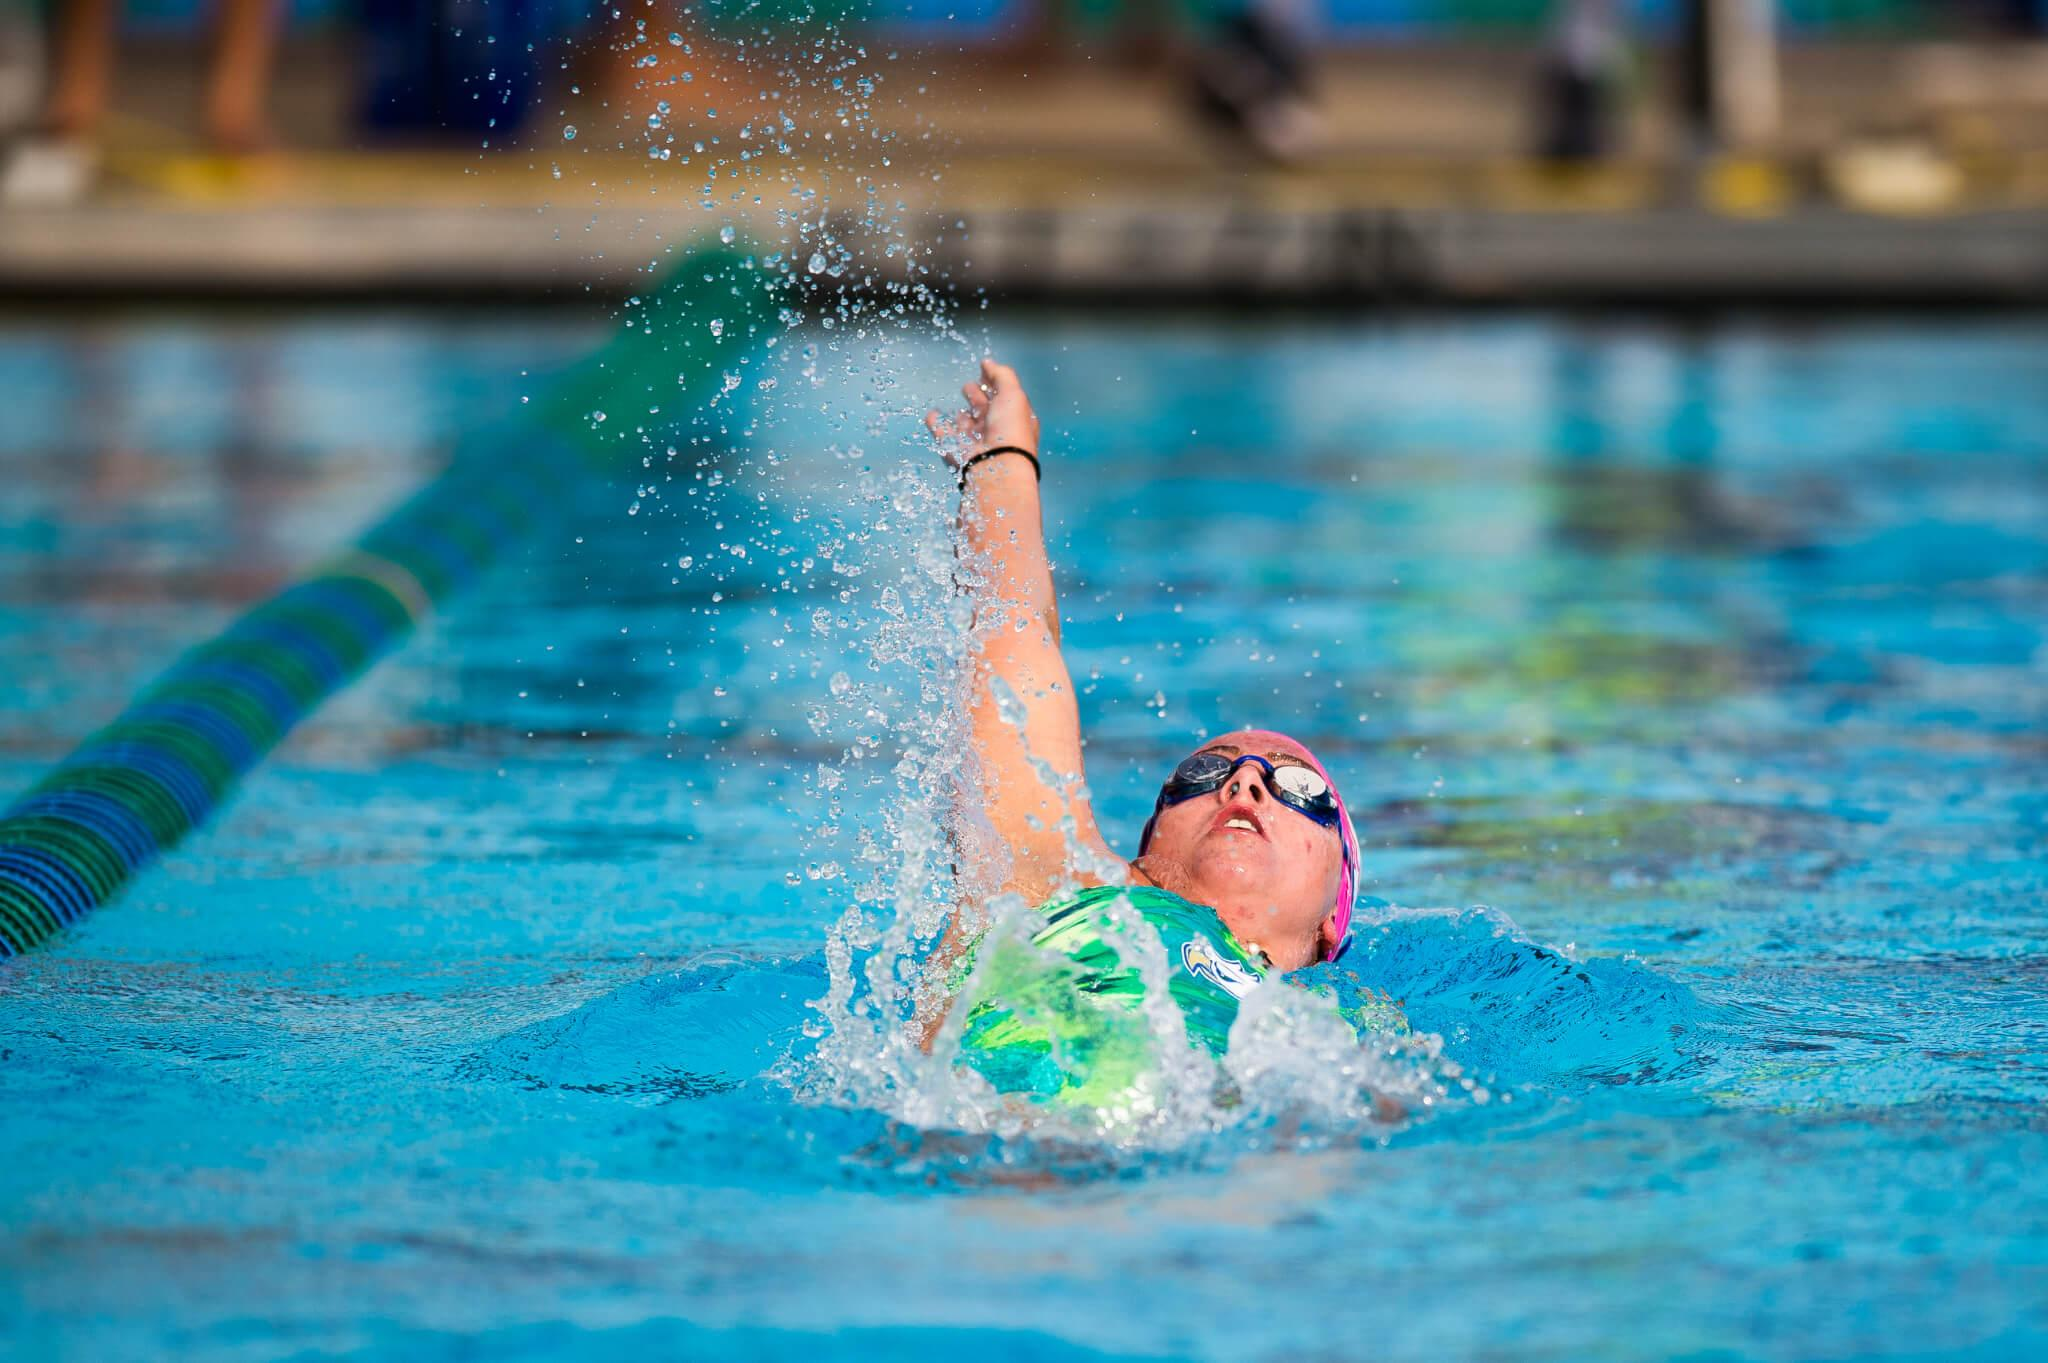 FGCU women's swim puts up a strong win against Liberty